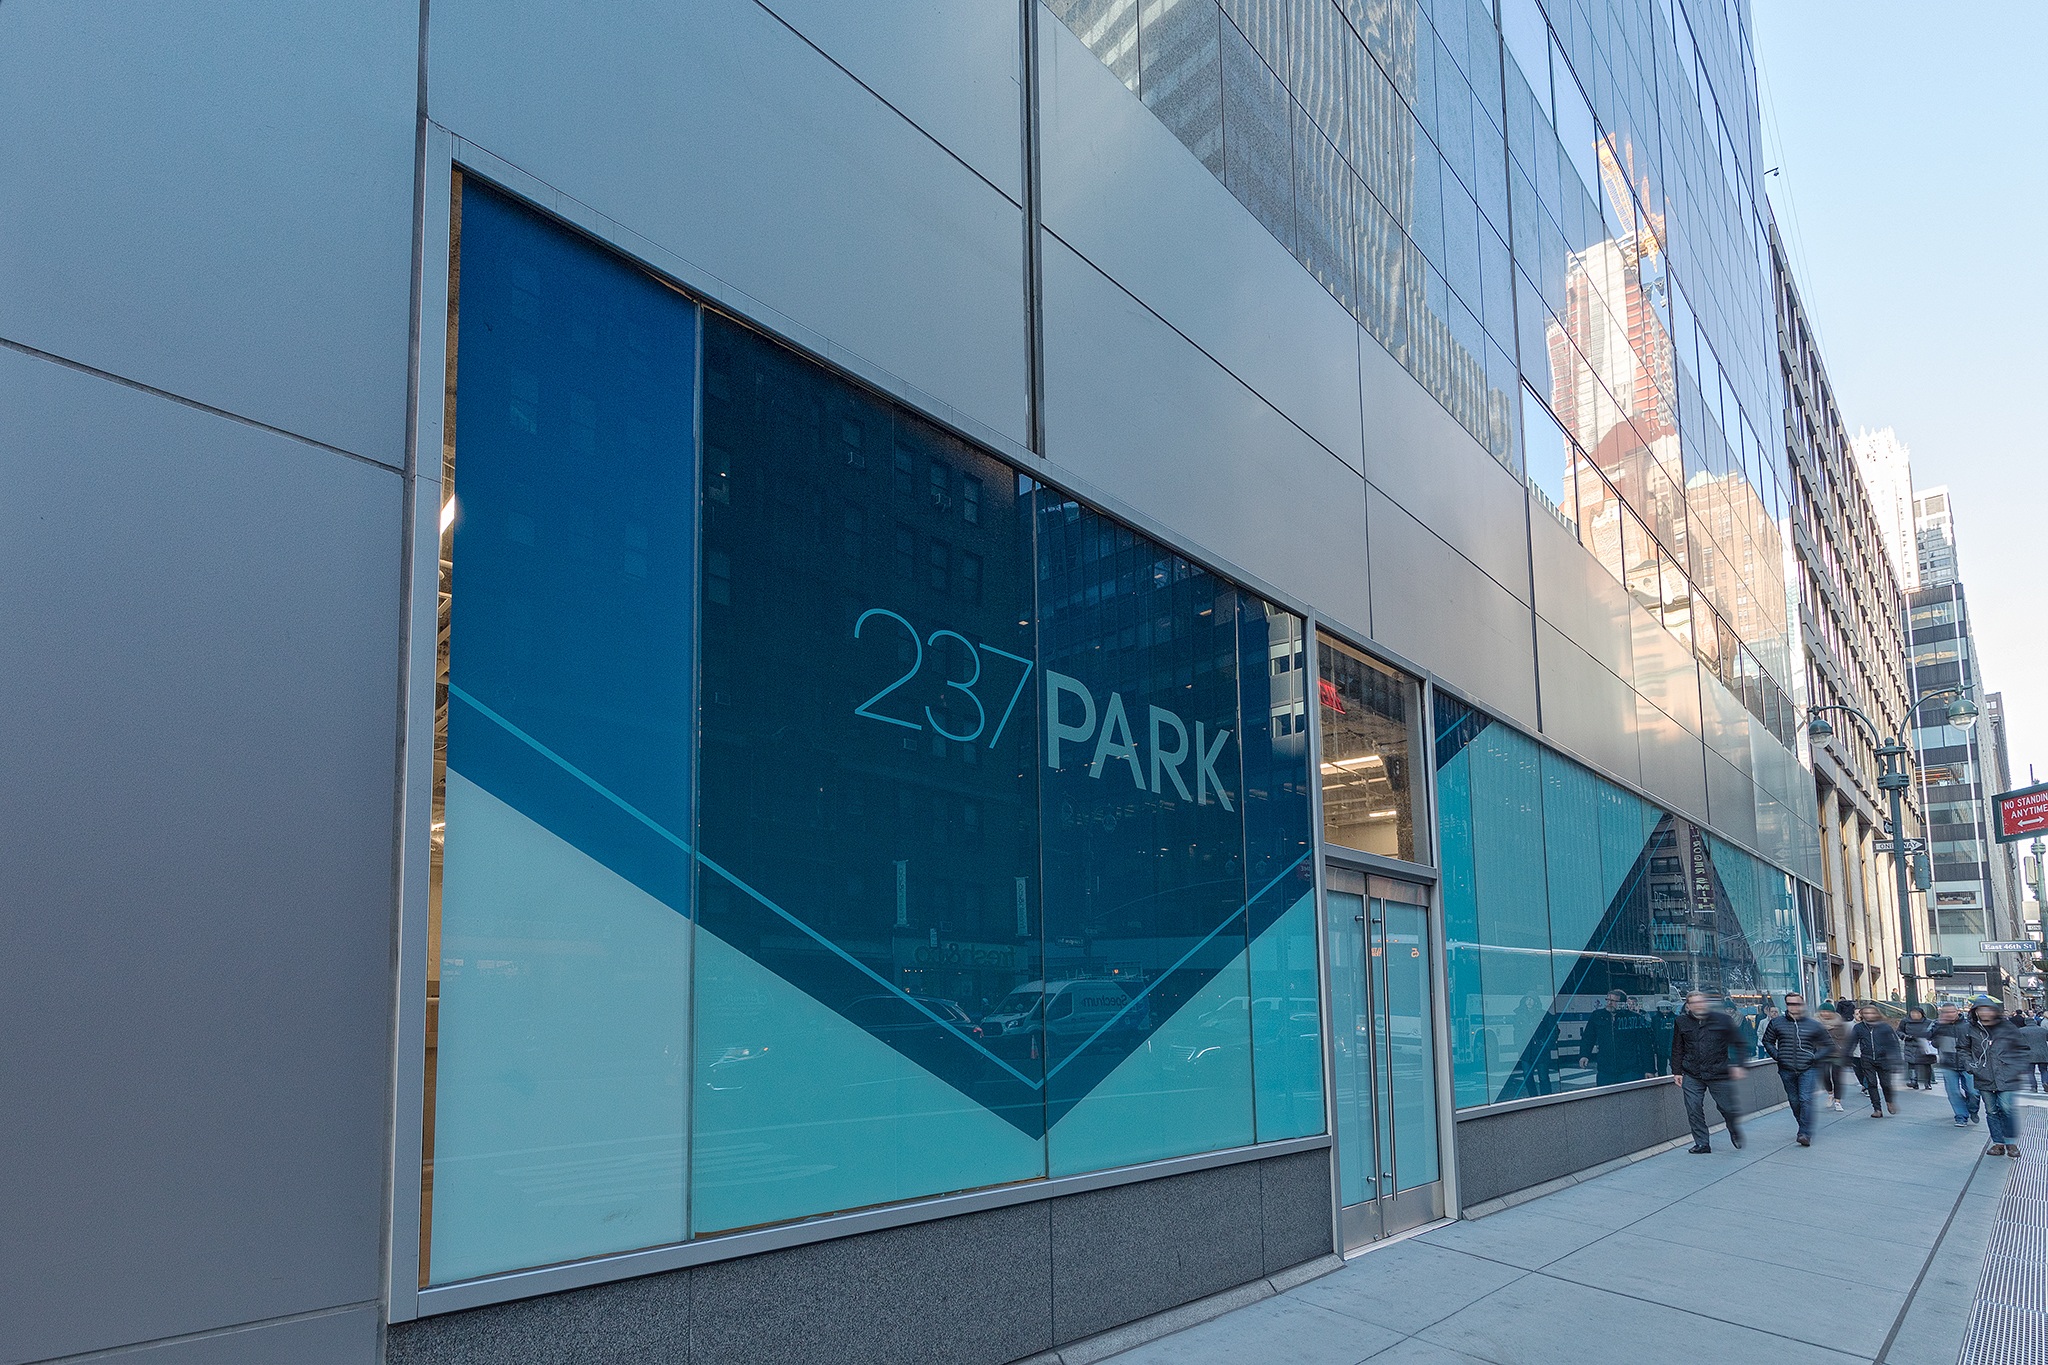 237 Park Ave Window